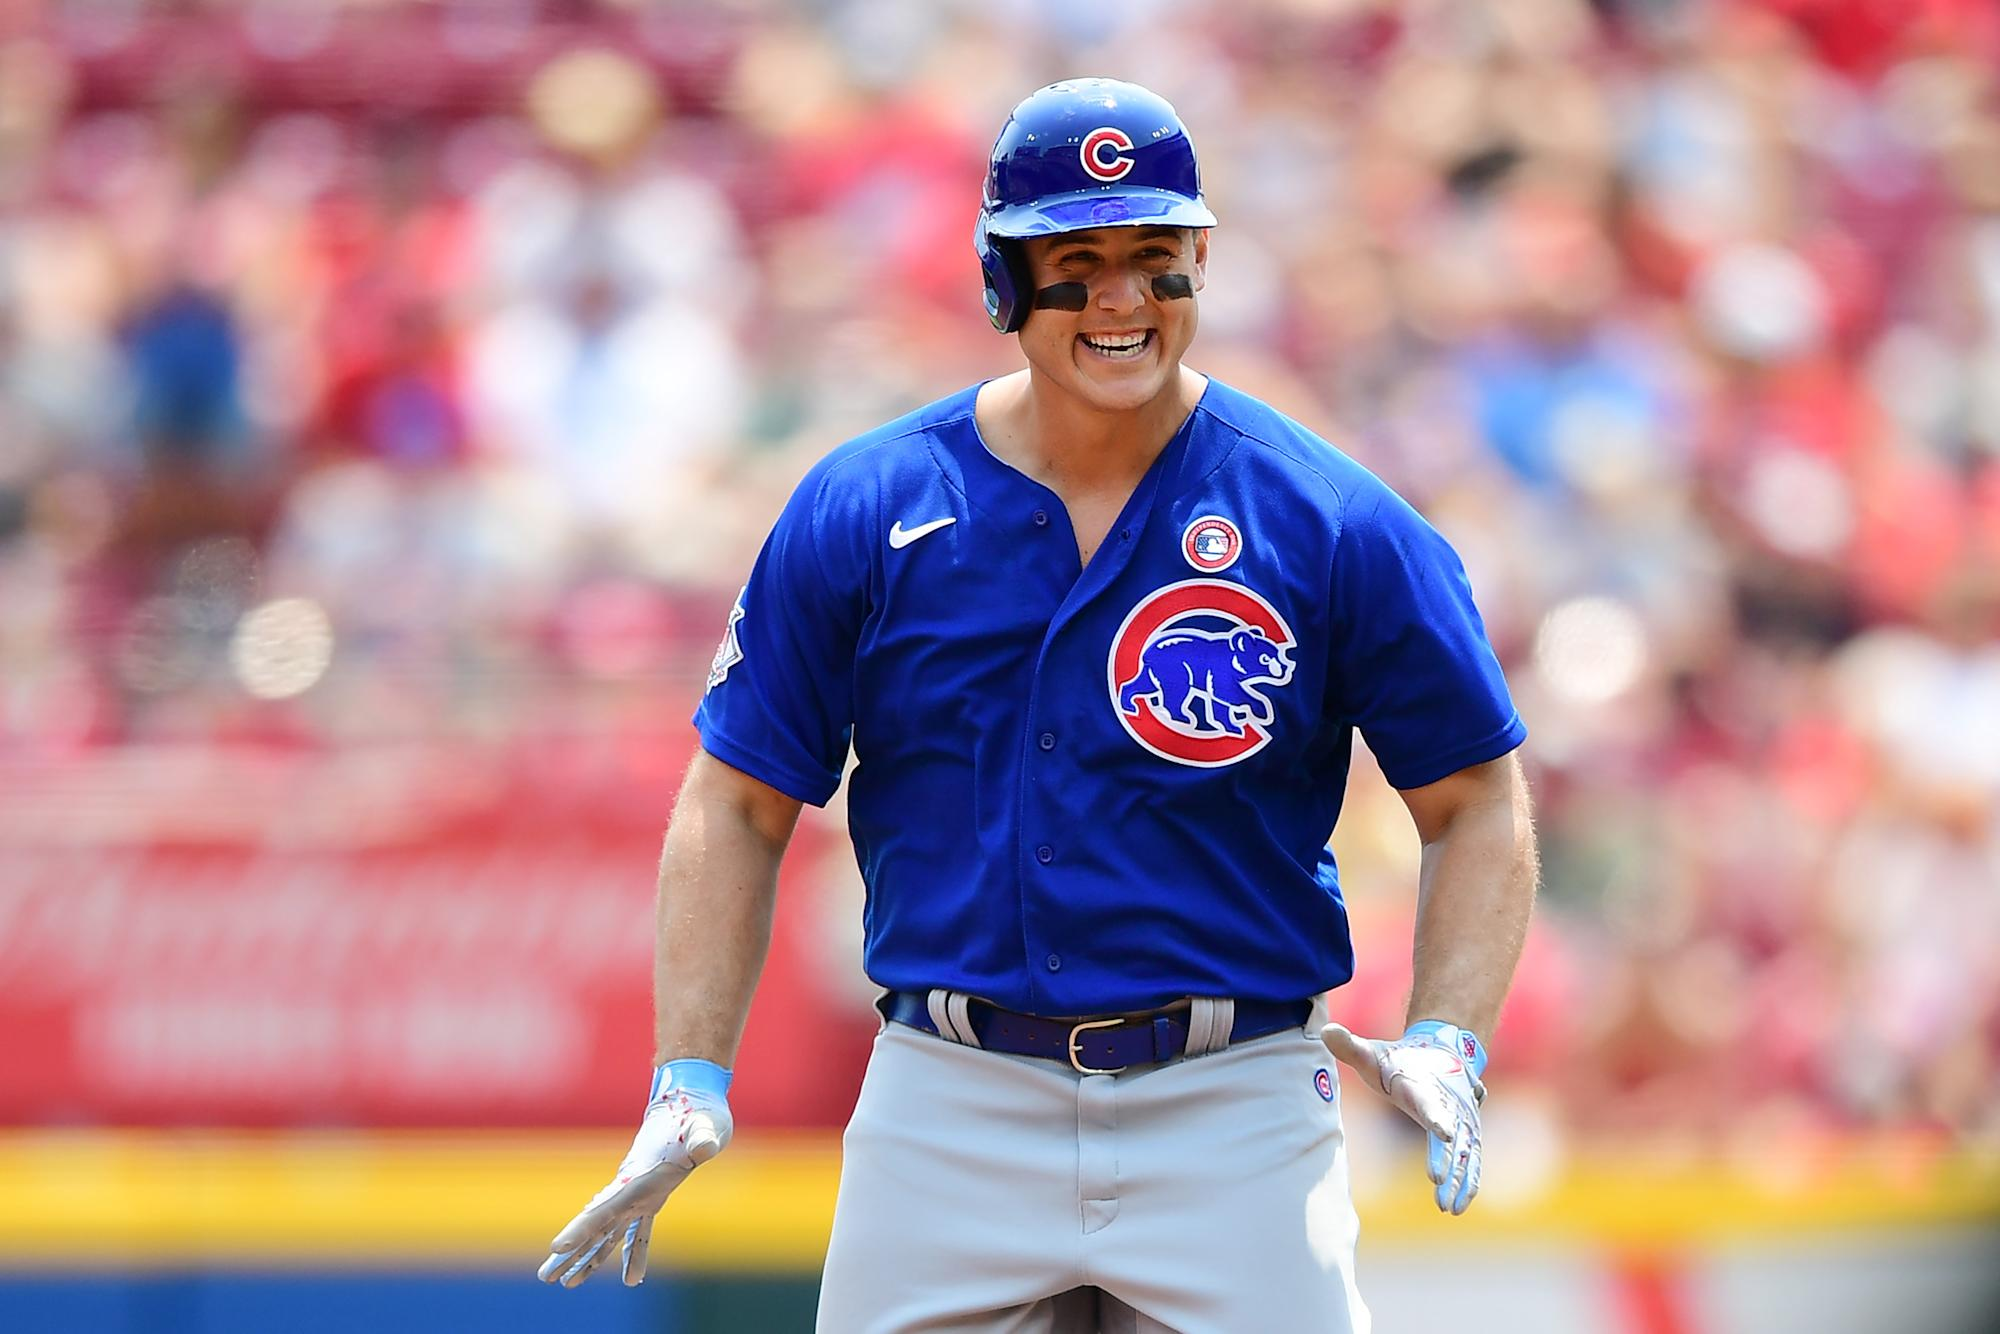 Report: Yankees pull off stunning trade for Cubs star Anthony Rizzo